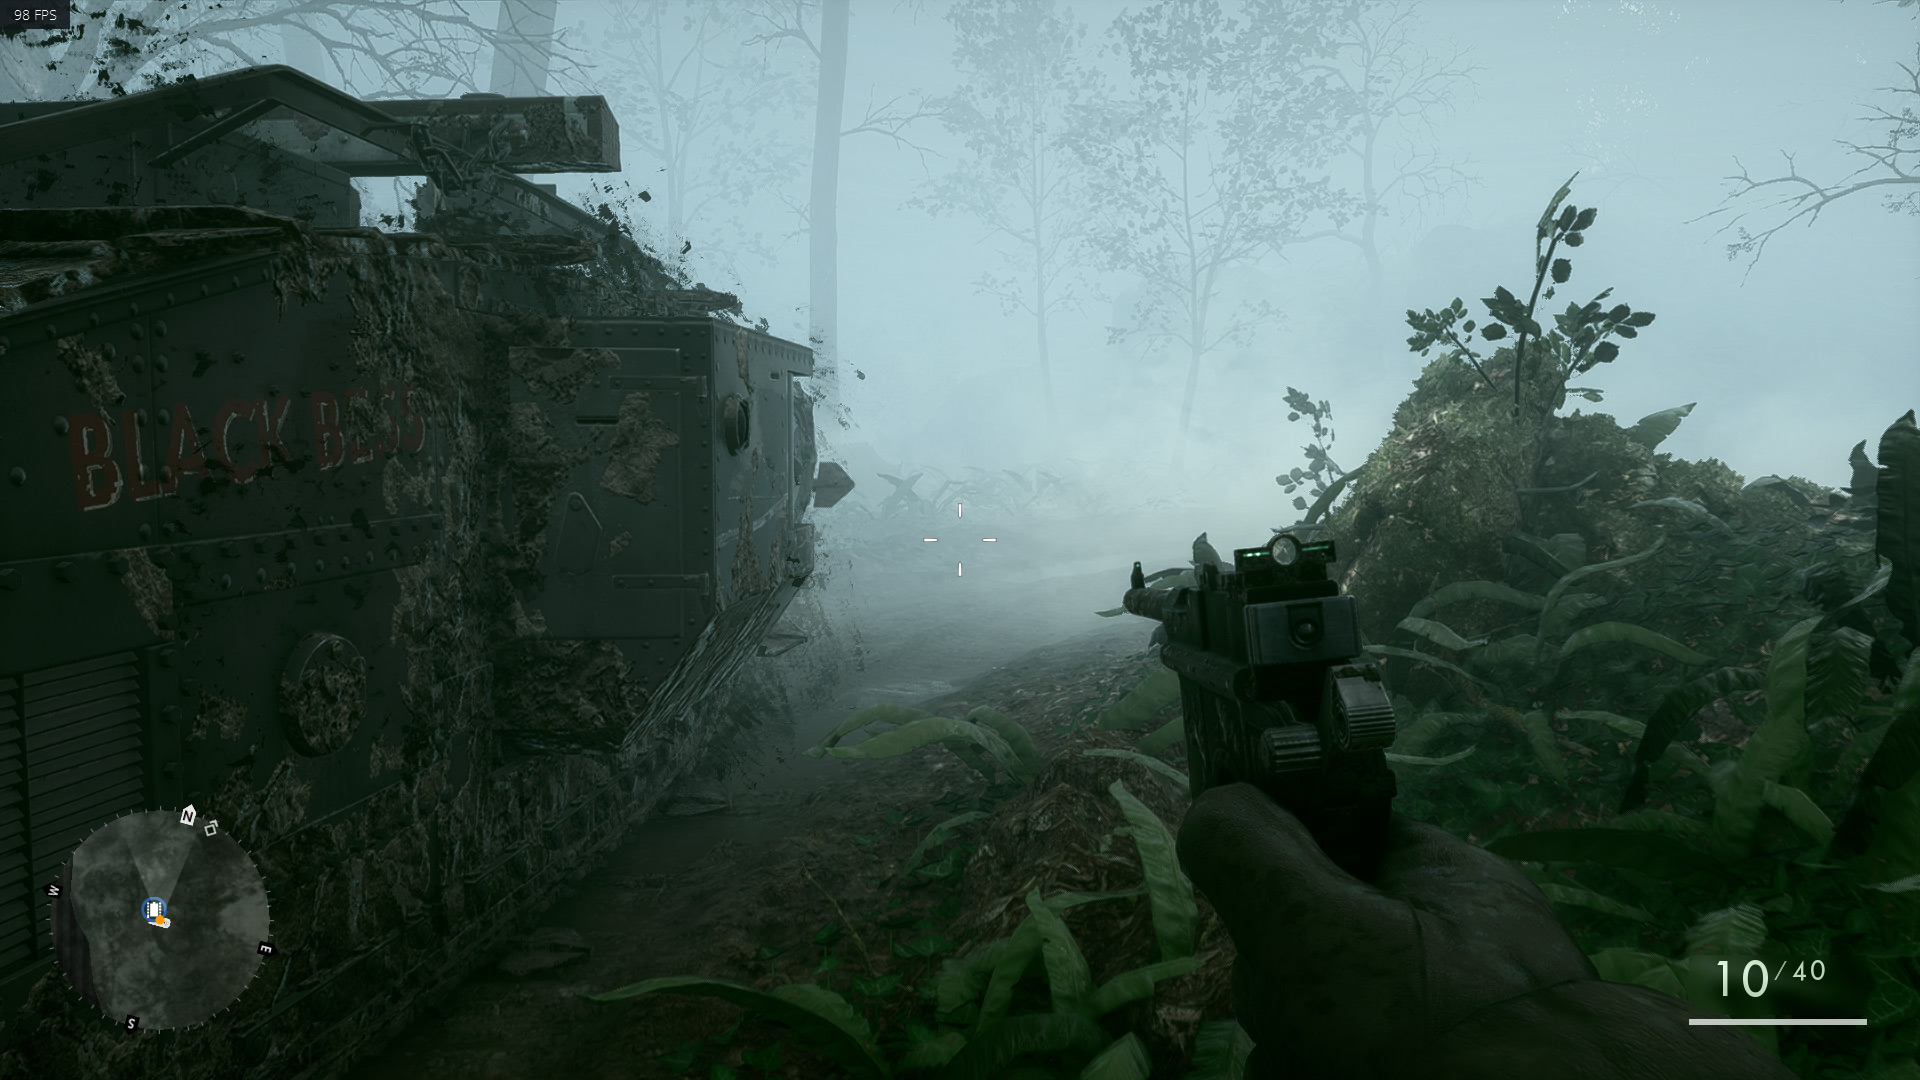 That's some stunning texture and foliage work for a 2016 game.